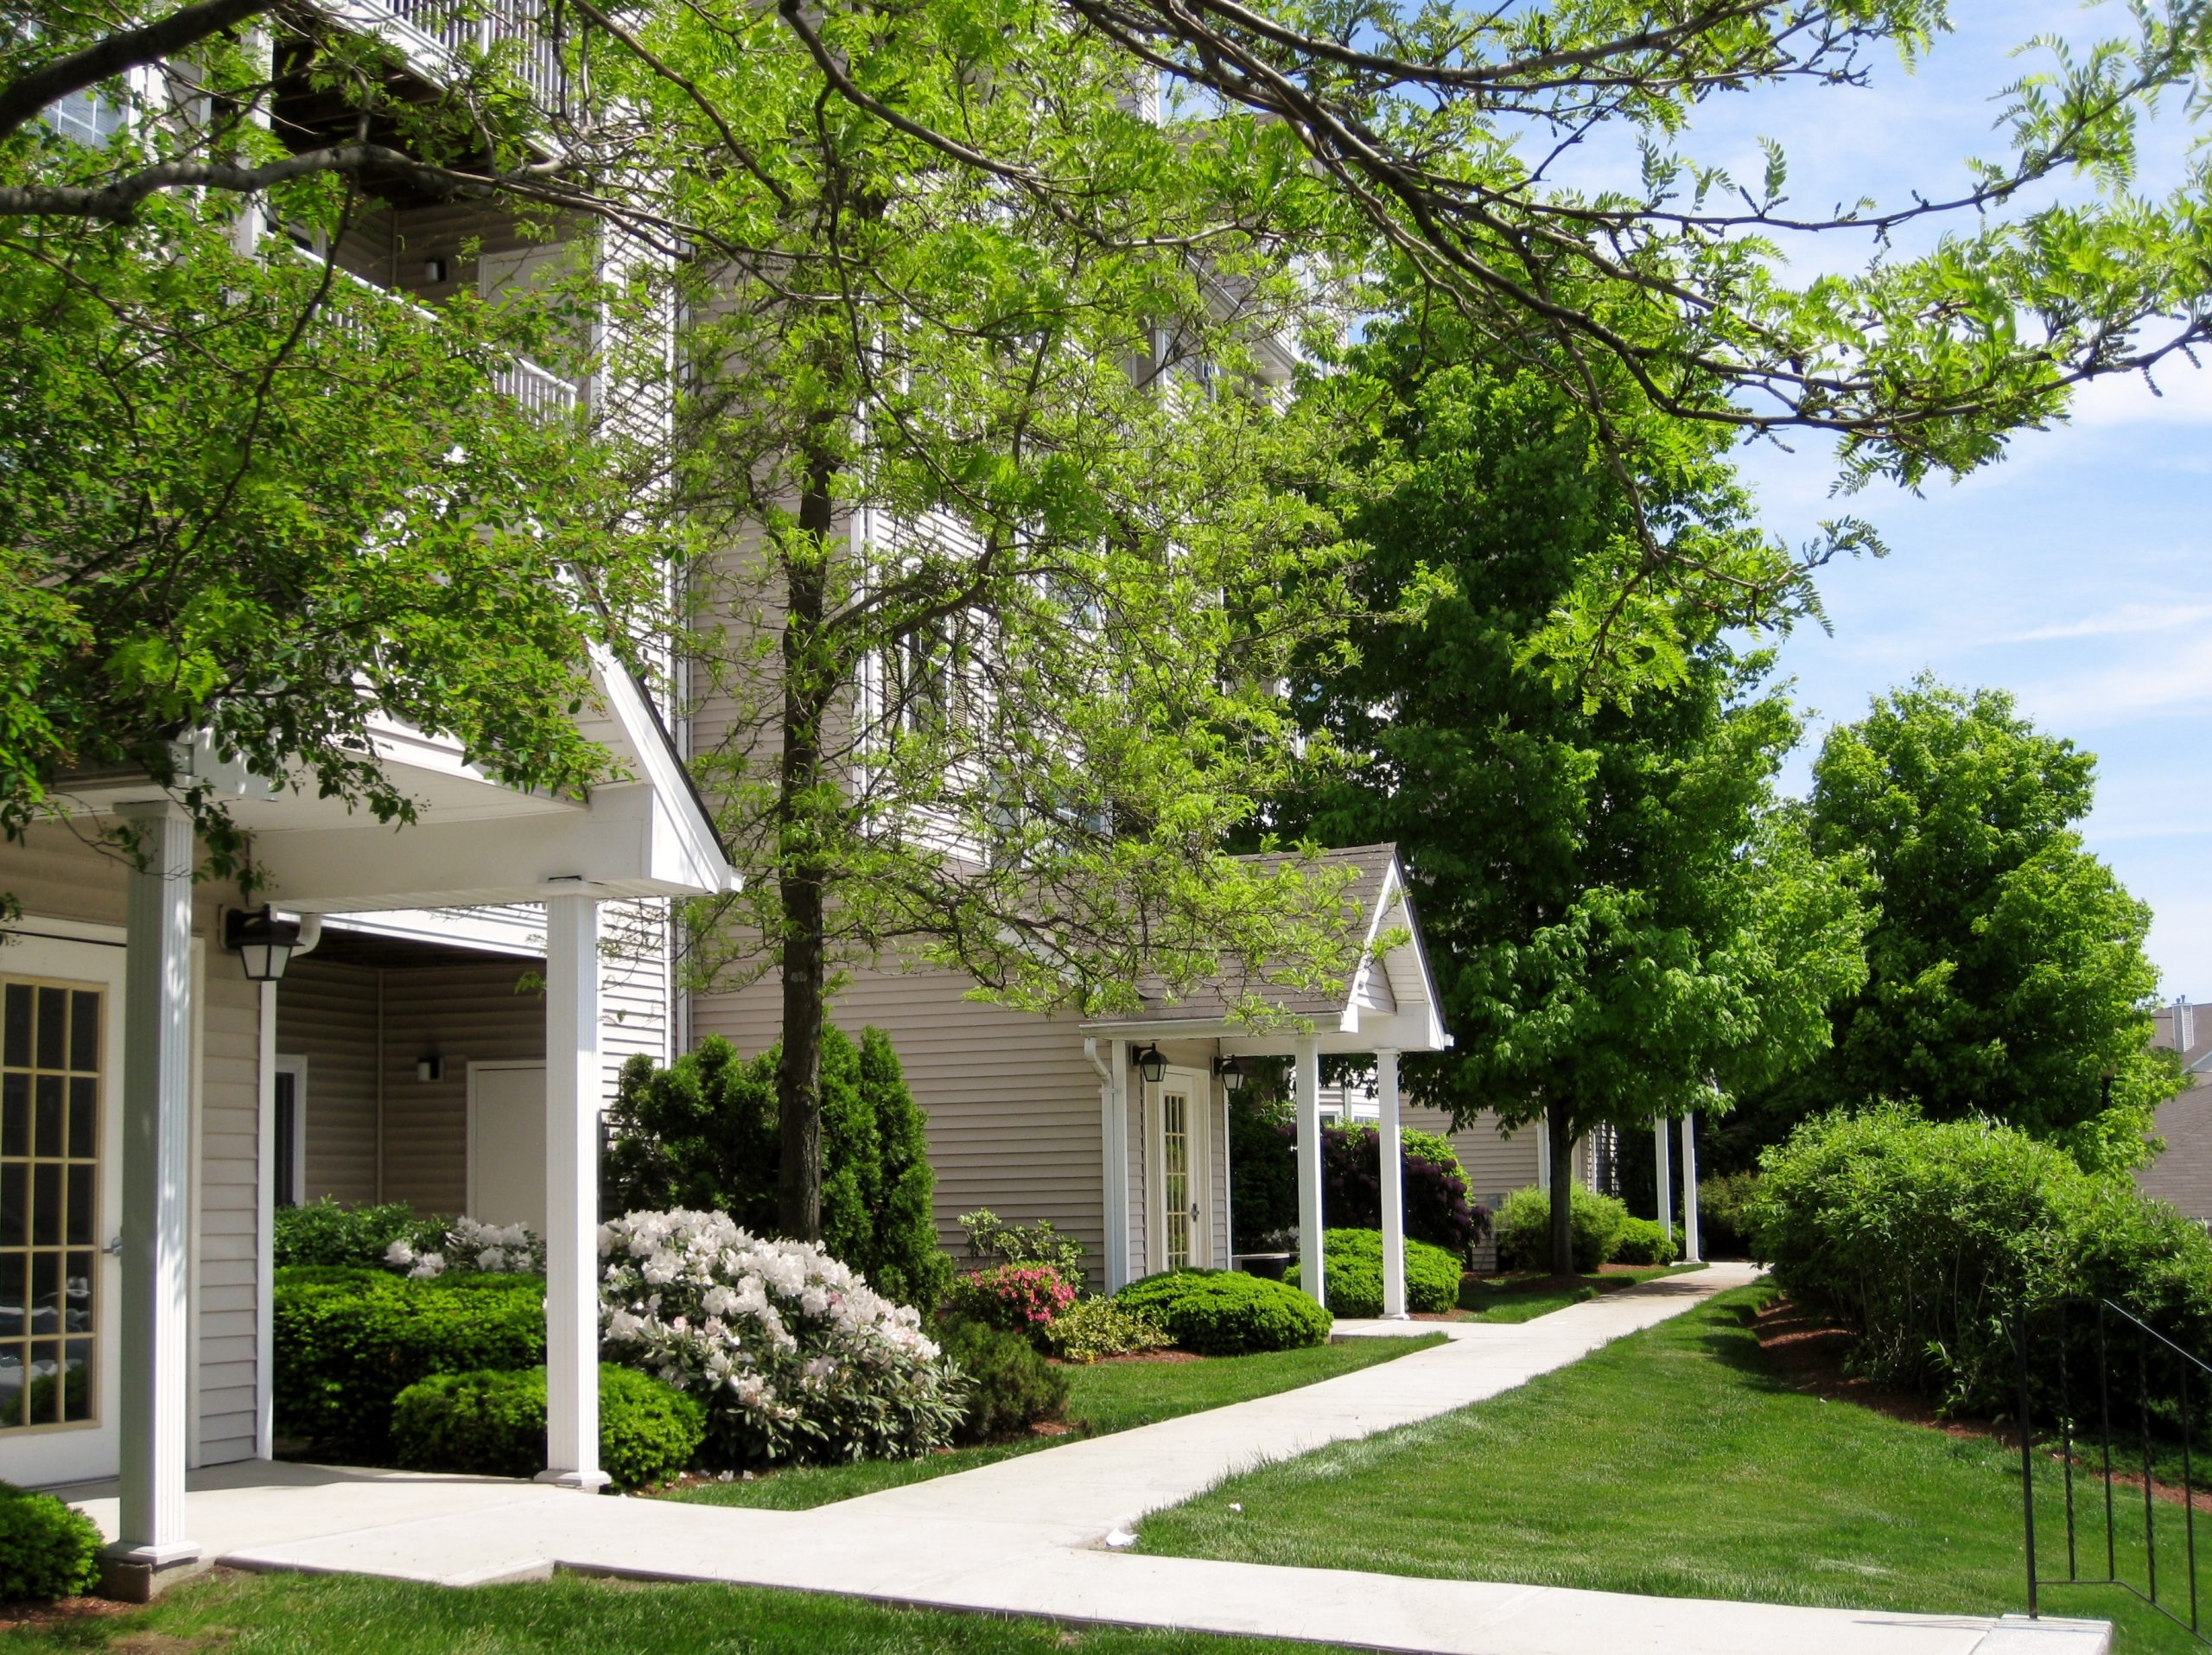 Avalon Apartments Landscaping in the Spring